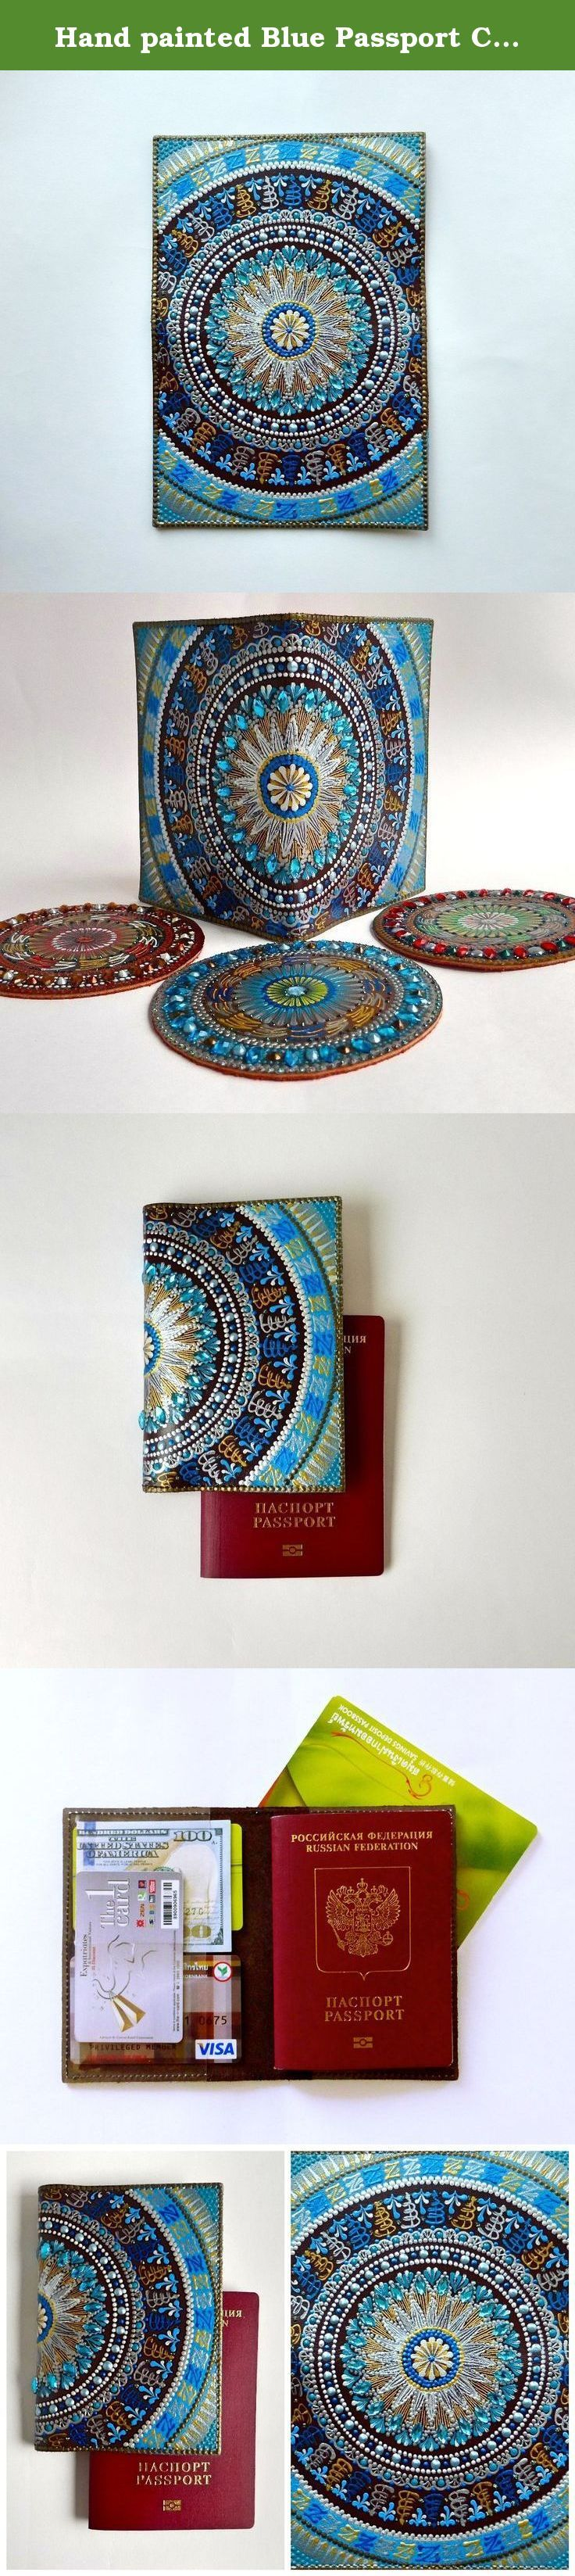 "Hand painted Blue Passport Cover Gift Mandala Personalized Passport holder Leather passport wallet. This original hand-painted Passport Cover is a great gift for oneself, for a daughter, mother, grandmother, sister or girlfriend. Passport Cover Travel Wallet ""Mandala"" looks wonderful and every single Passport & Credit Card Cover is unique. ♥ Unique handmade product. Made in Russia. ♥ Measures 7.75"" x 5.35"" inches (19.5 x 13.50 sm) open and 3.87"" x 5.35"" inches (9.75 x 13.50 sm) closed. ♥..."